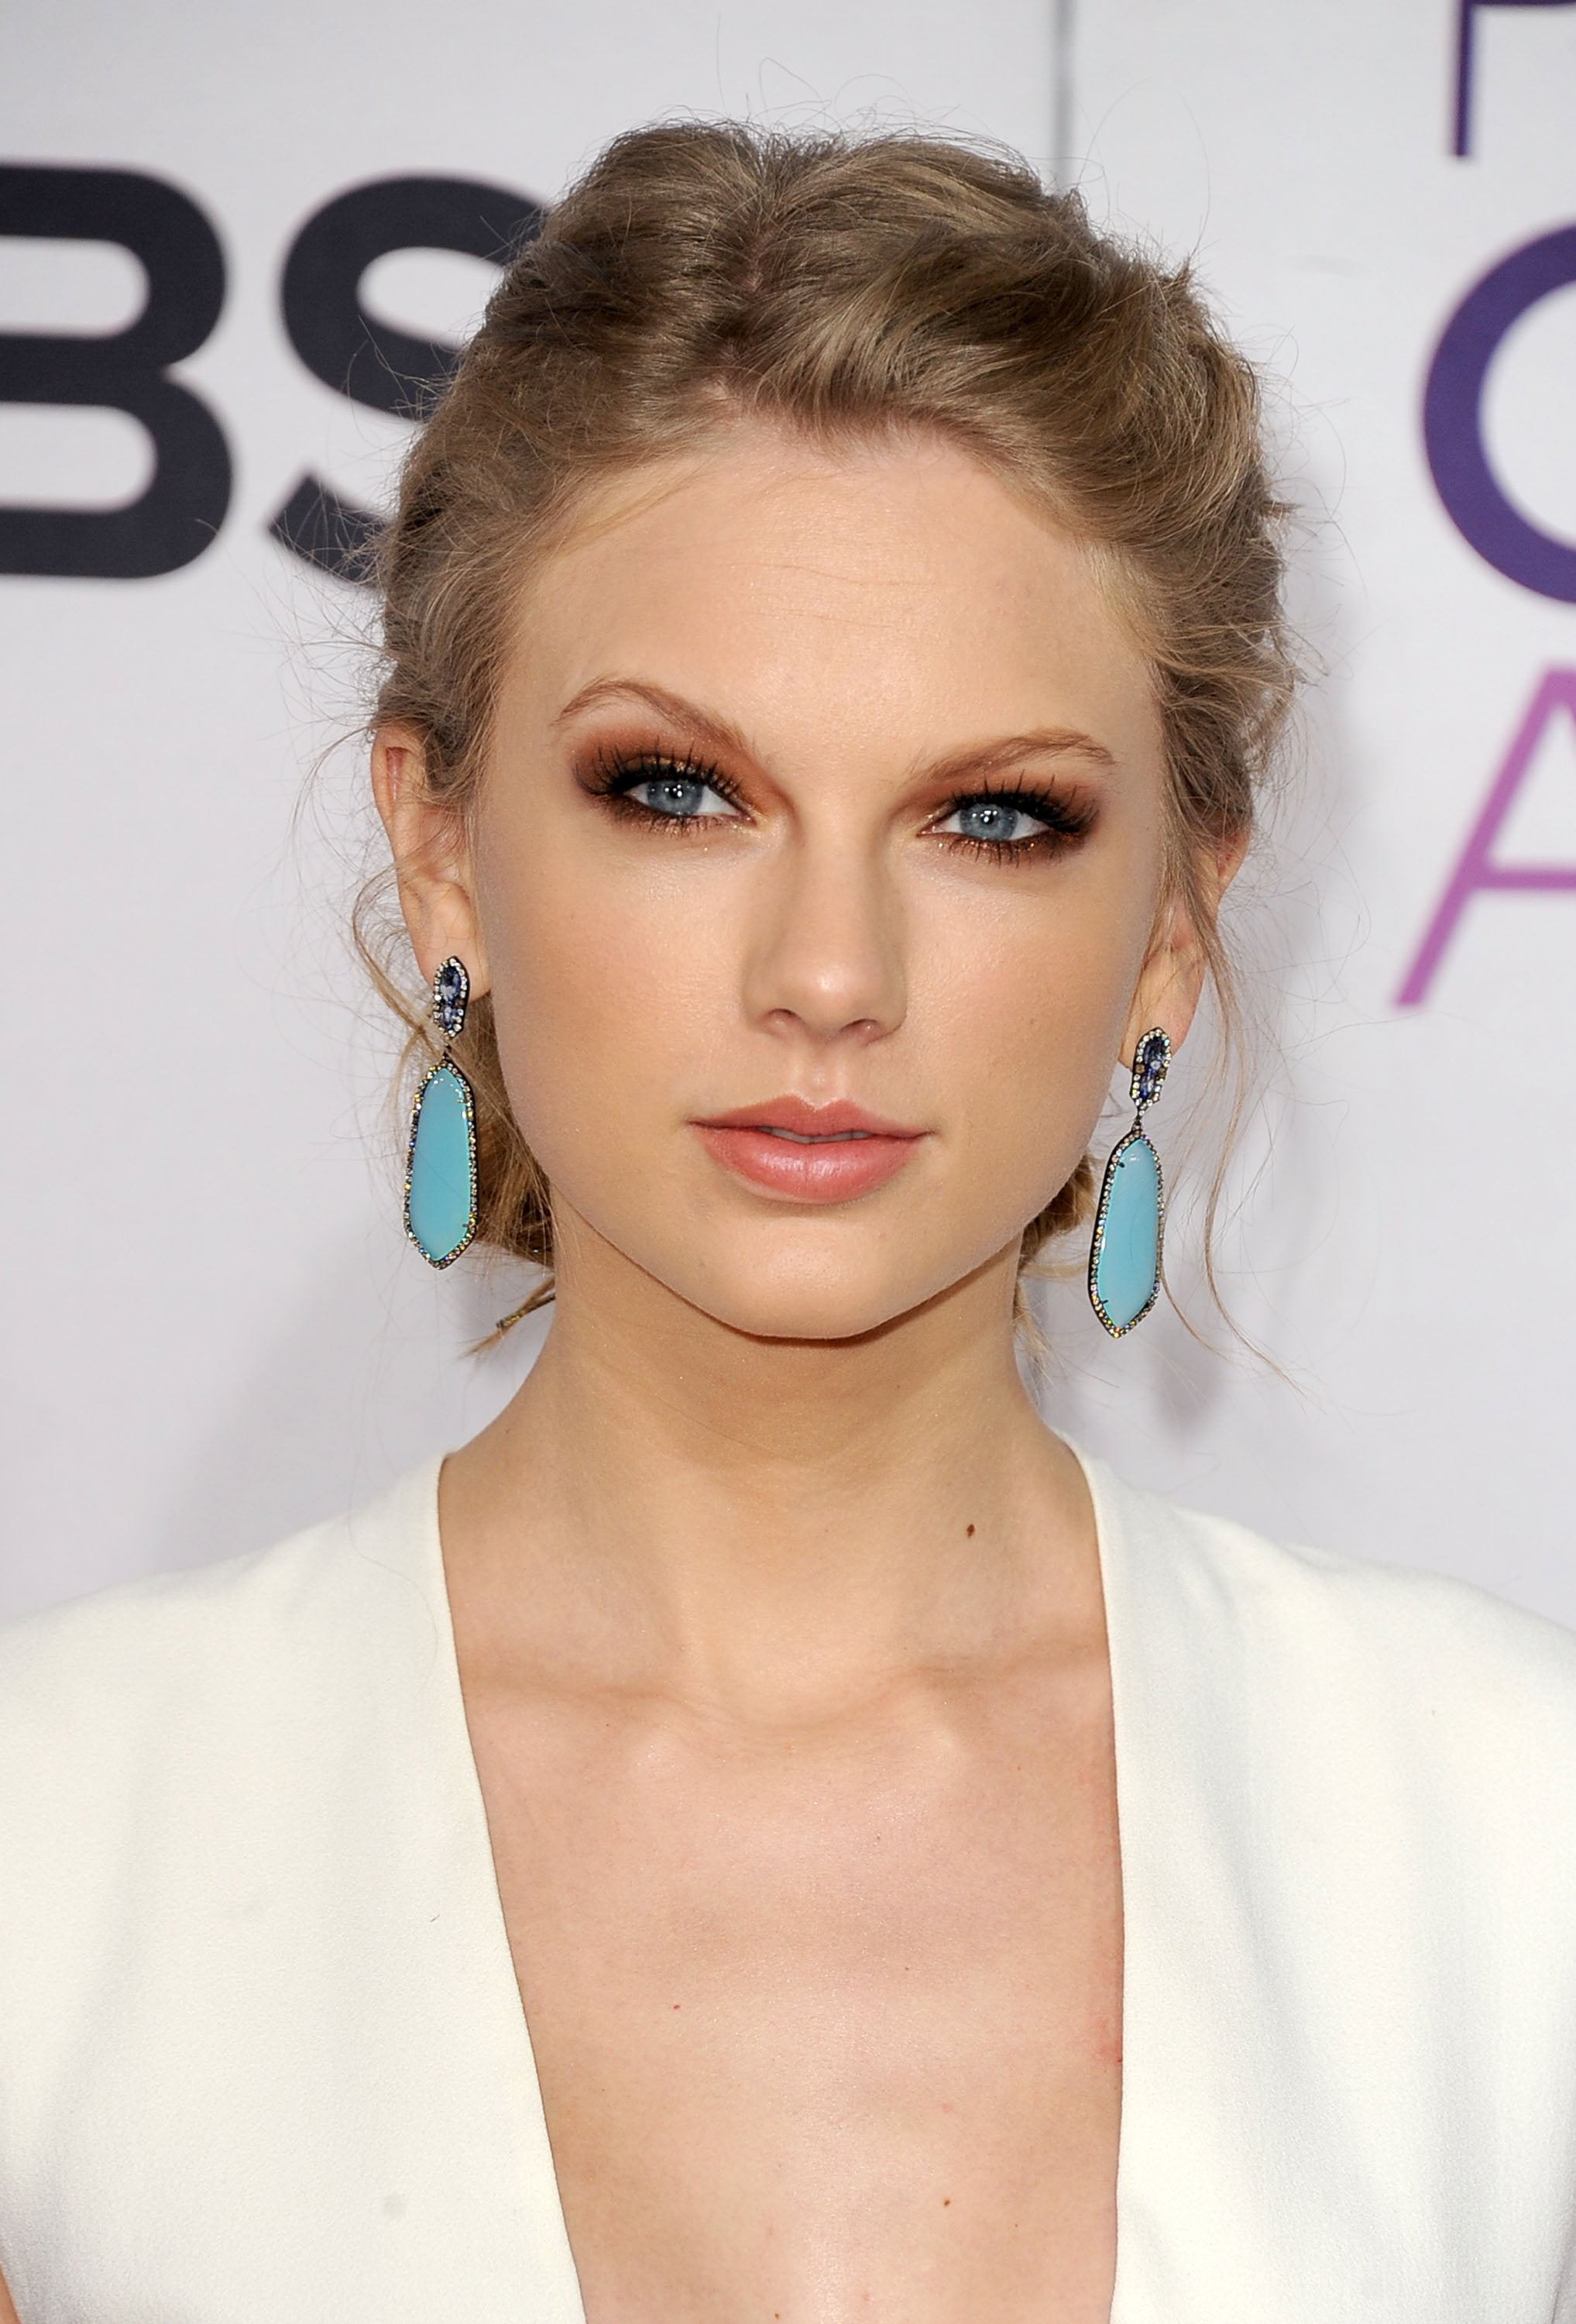 Taylor Swift walked the red carpet at the 2013 PCAs.